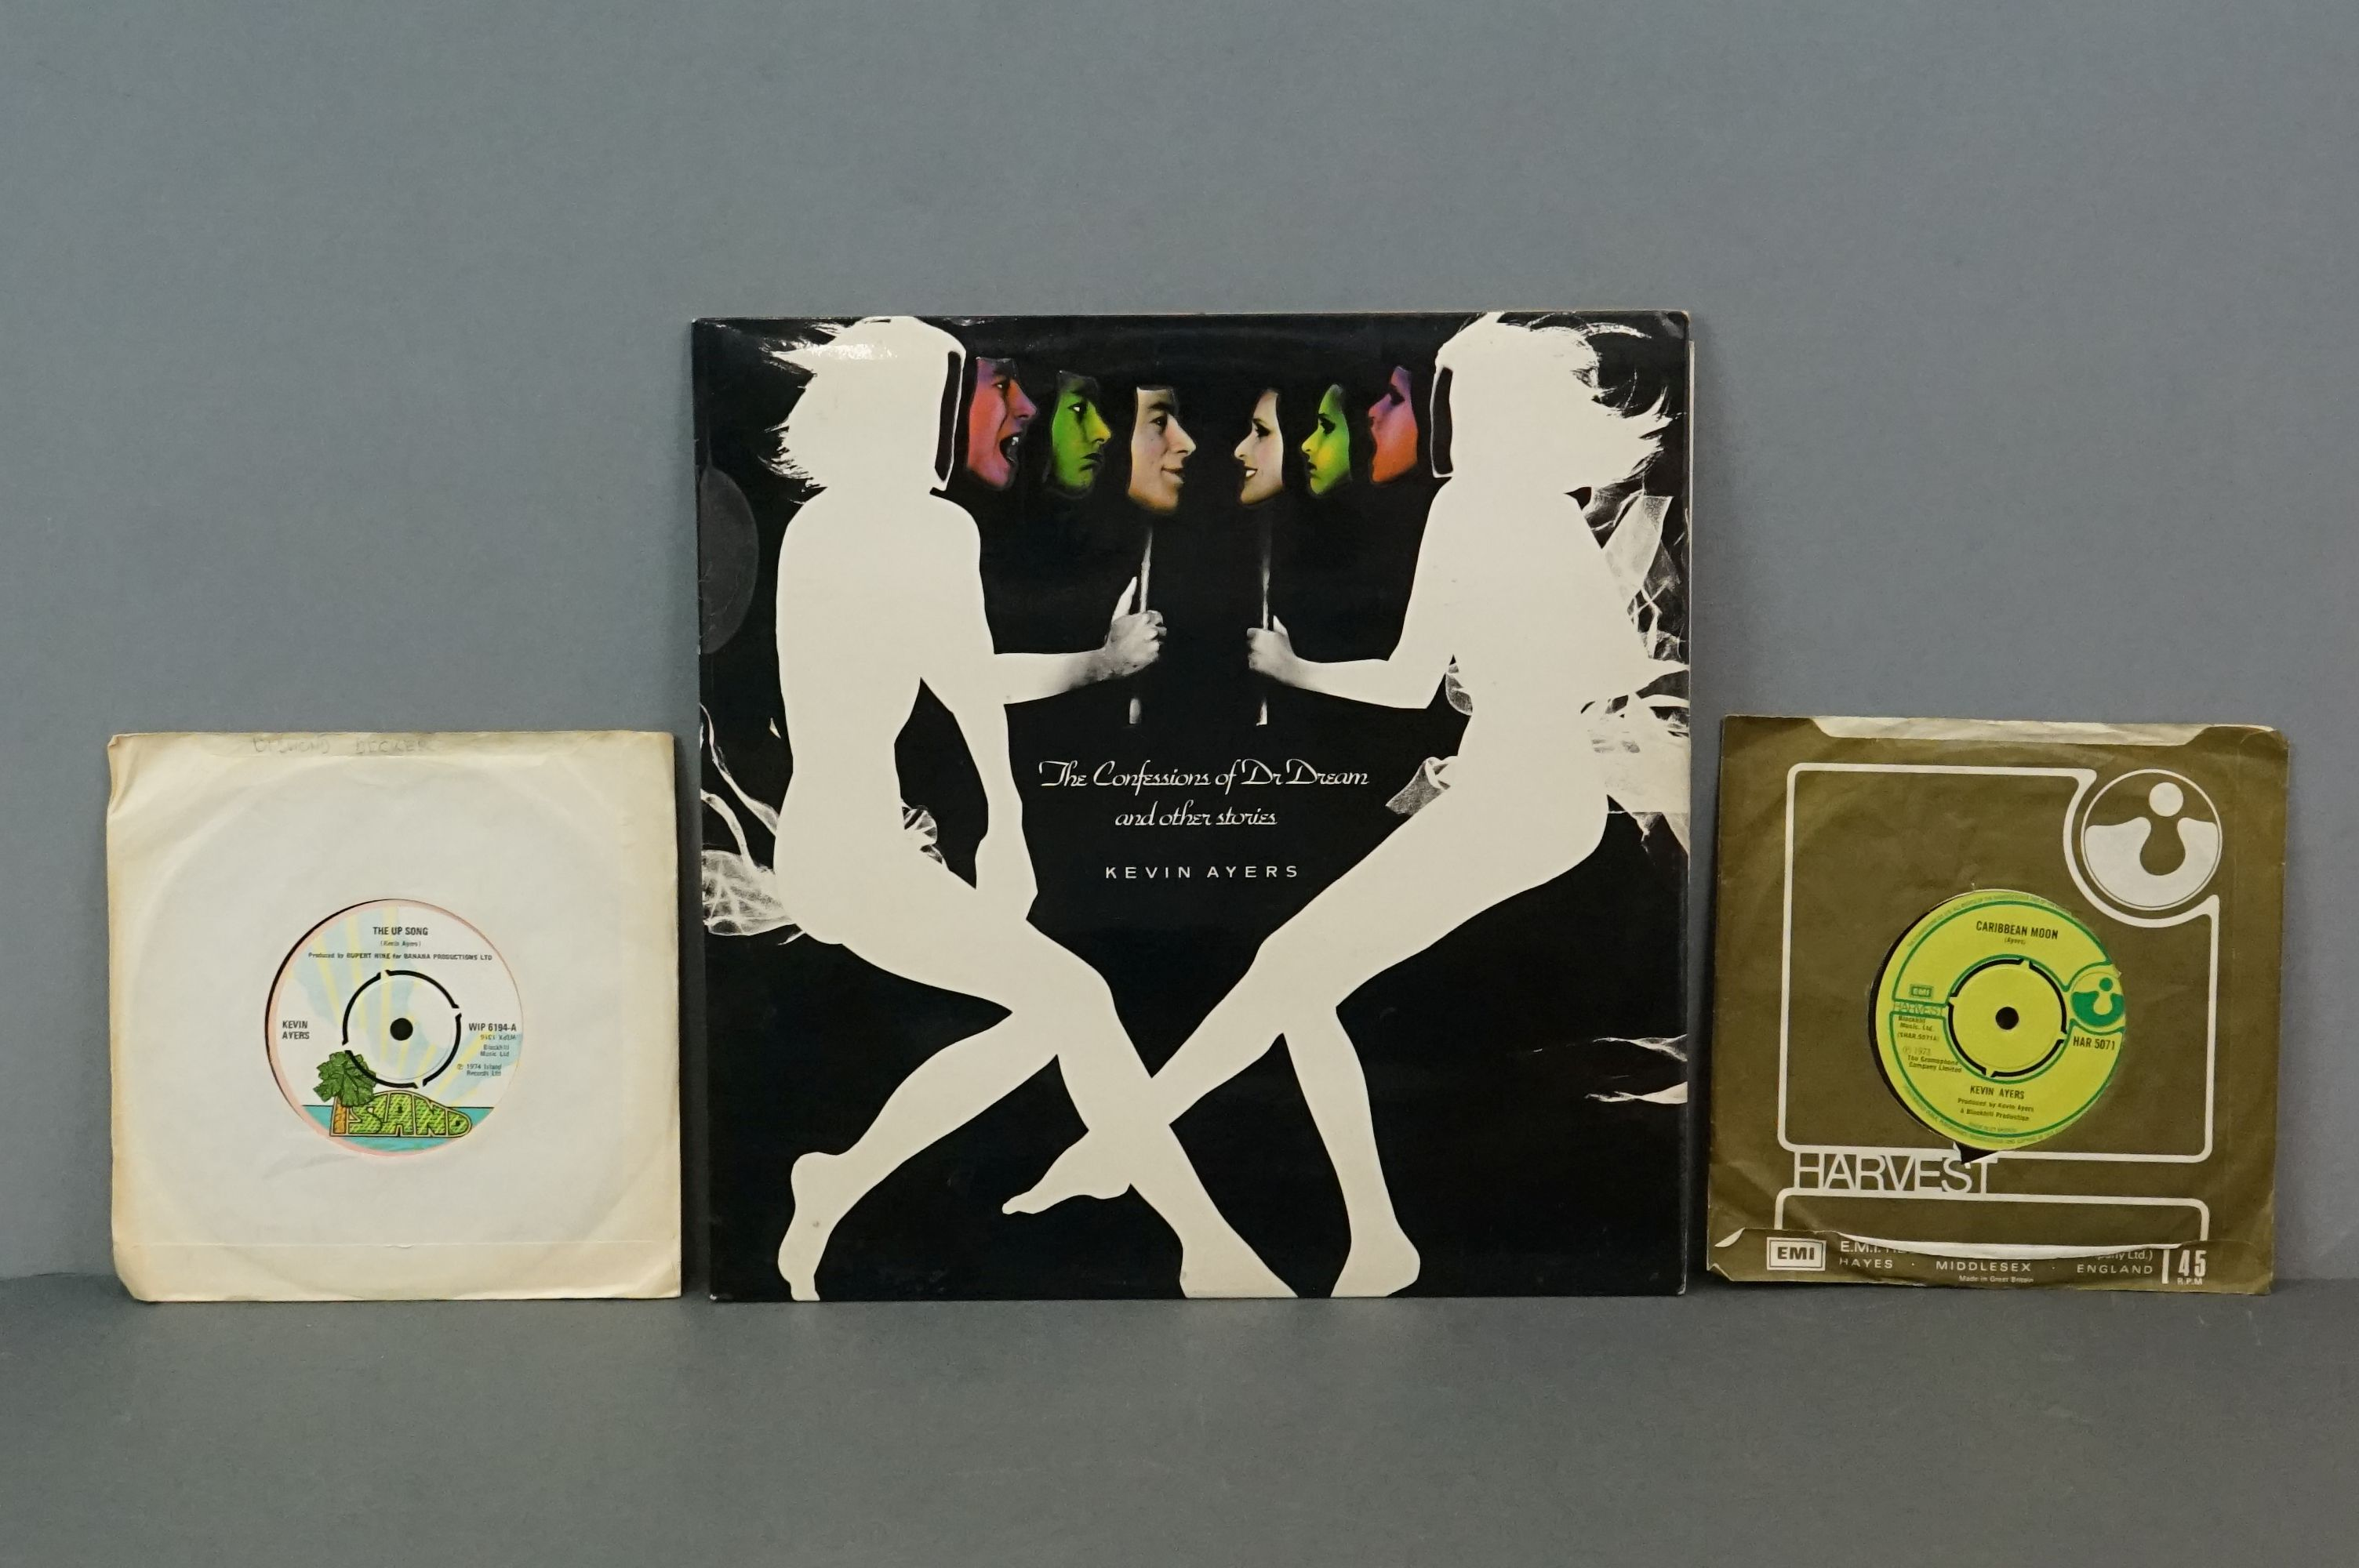 Vinyl - Kevin Ayers 1 LP The Confessions Of Dr Dream (ILPS 9263) lyric inner plus 7 inch singles